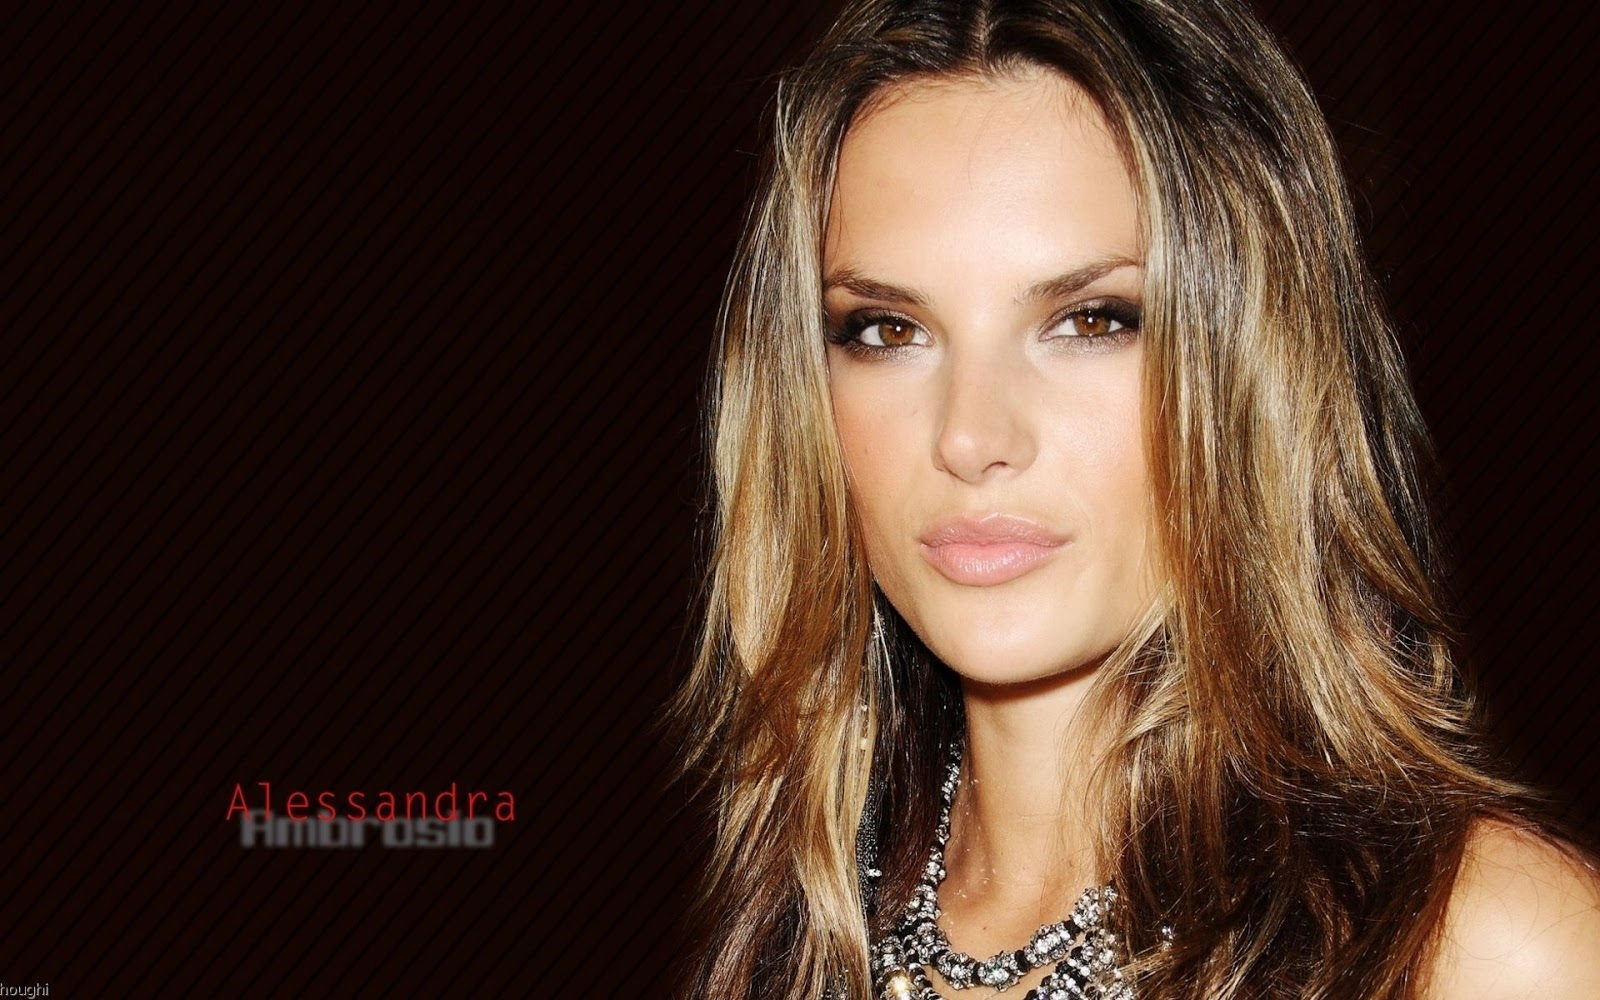 Alessandra Ambrosio hd wallpapers | HD Wallpapers алессандра амбросио